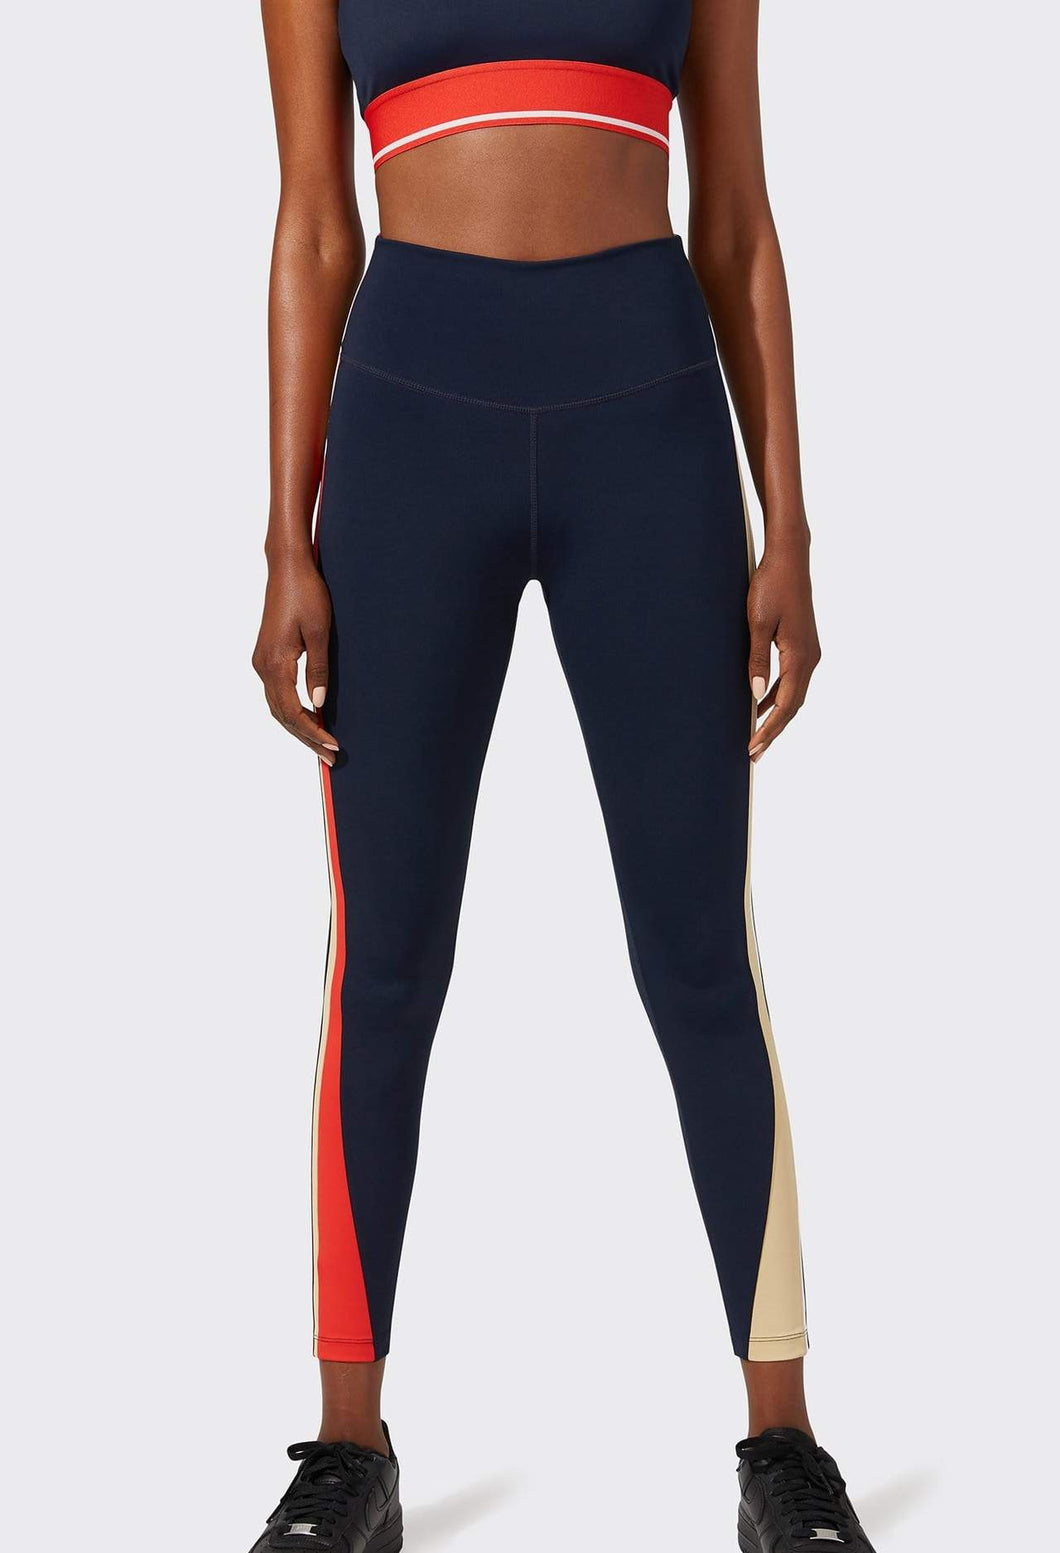 Bolt High Waist Legging Navy/White Combo